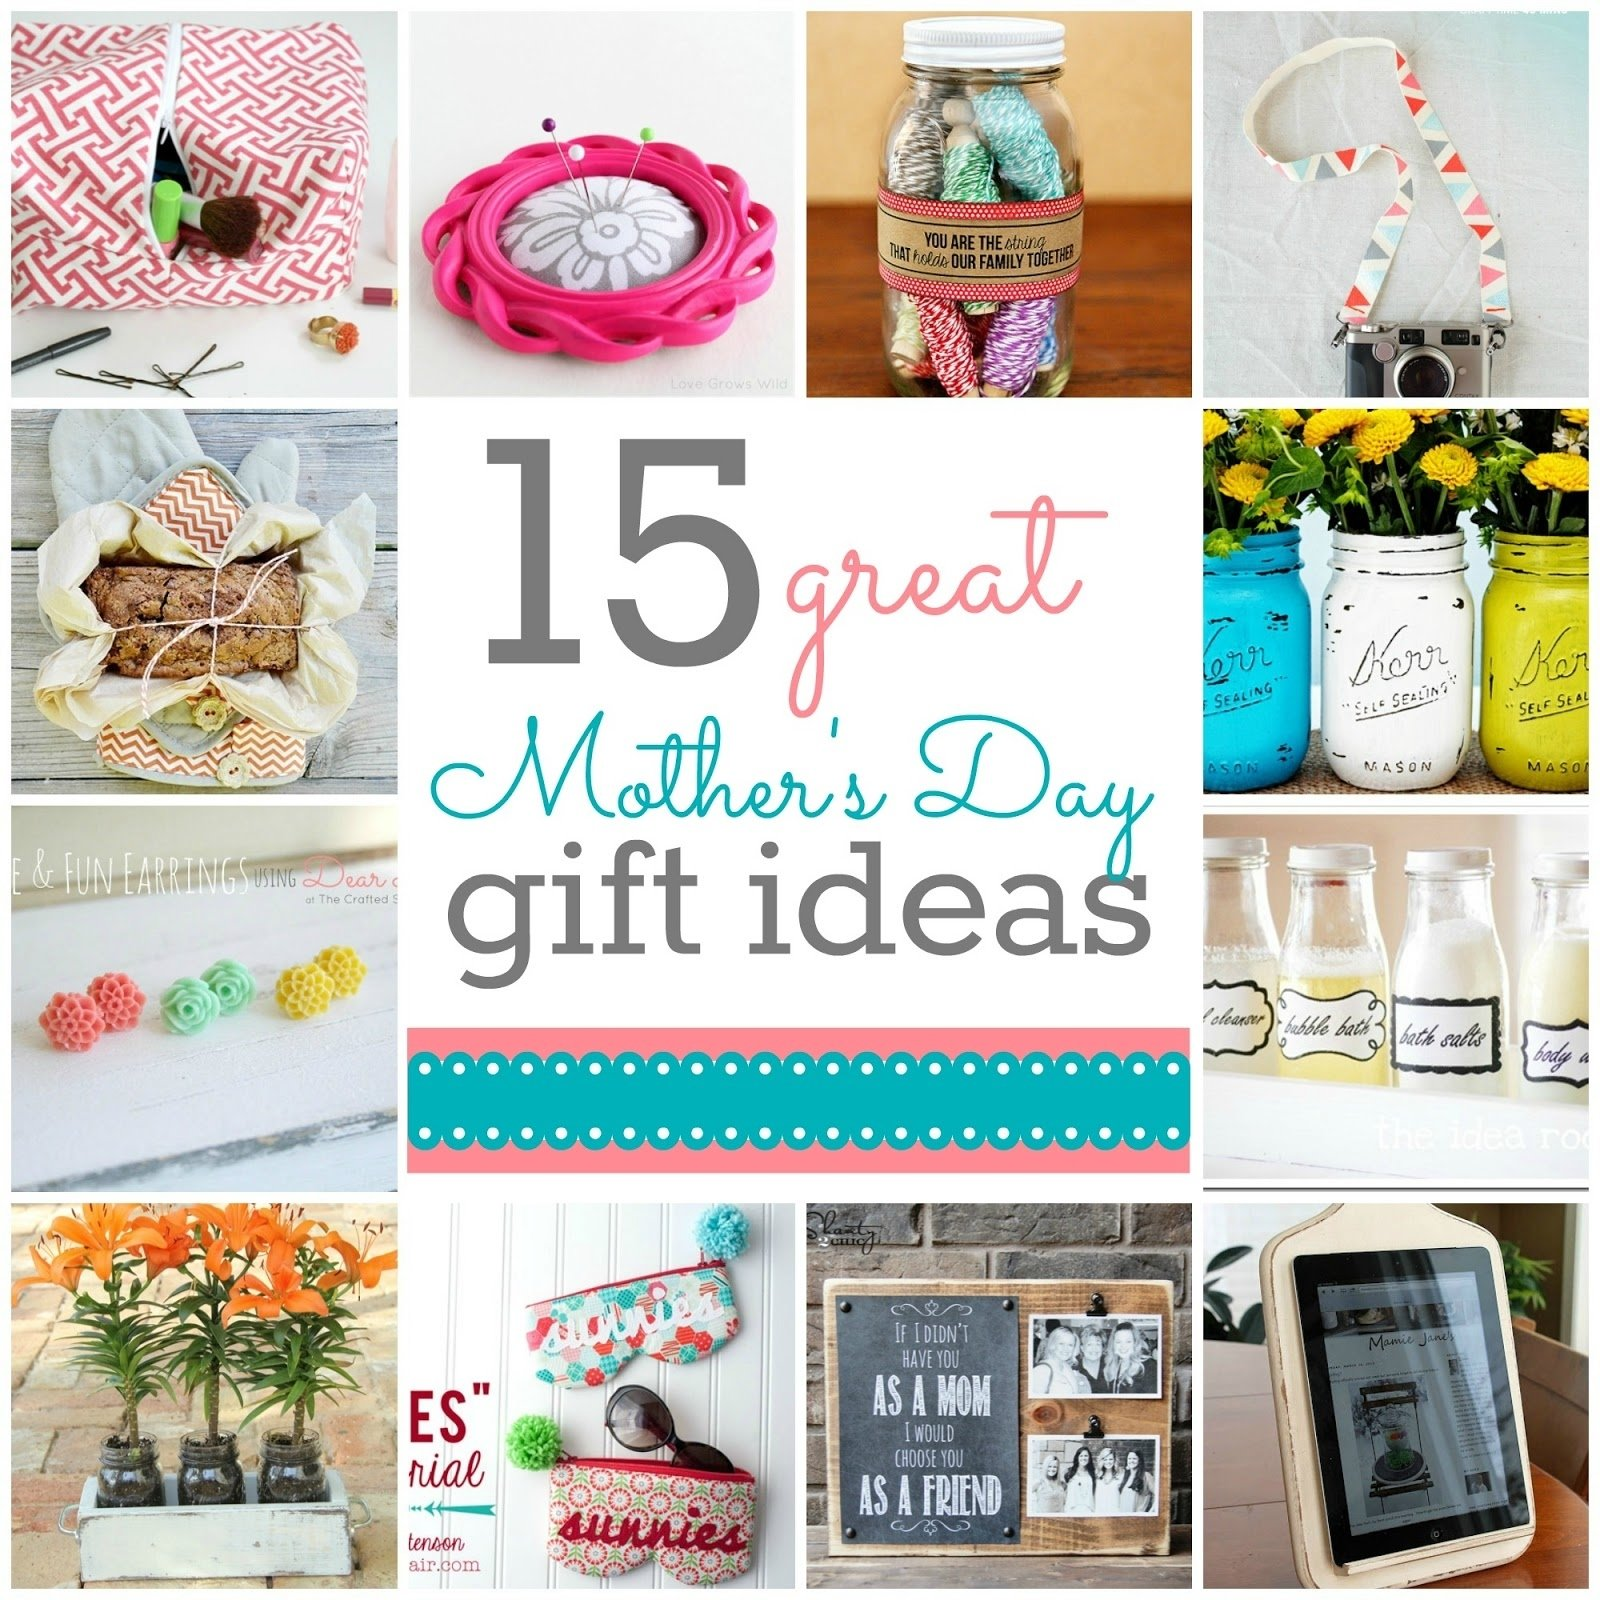 10 Unique Gift Ideas For Mom Birthday mothers day gift ideas an epic giveaway the crafted sparrow 2 2021